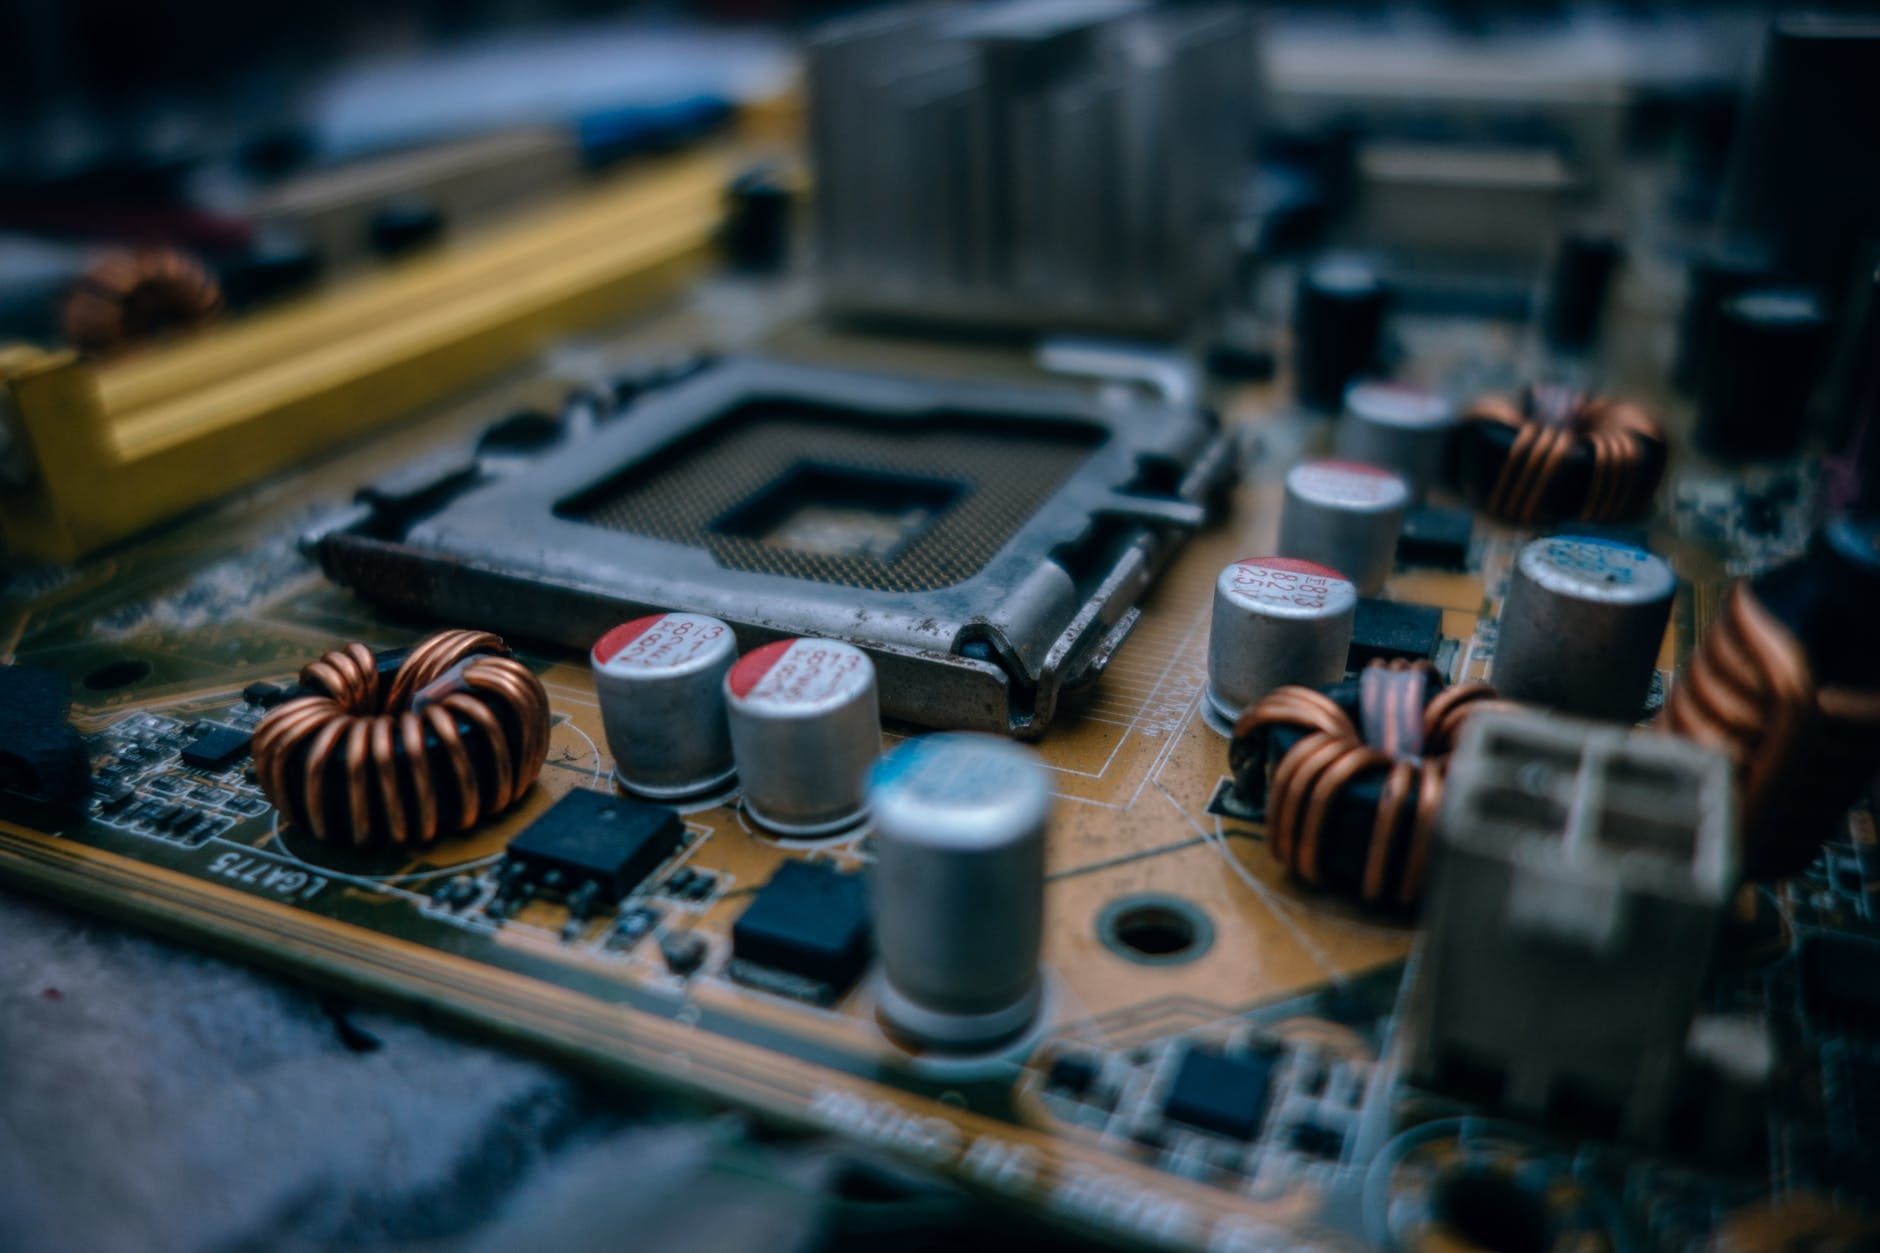 selective focus photography of computer motherboard